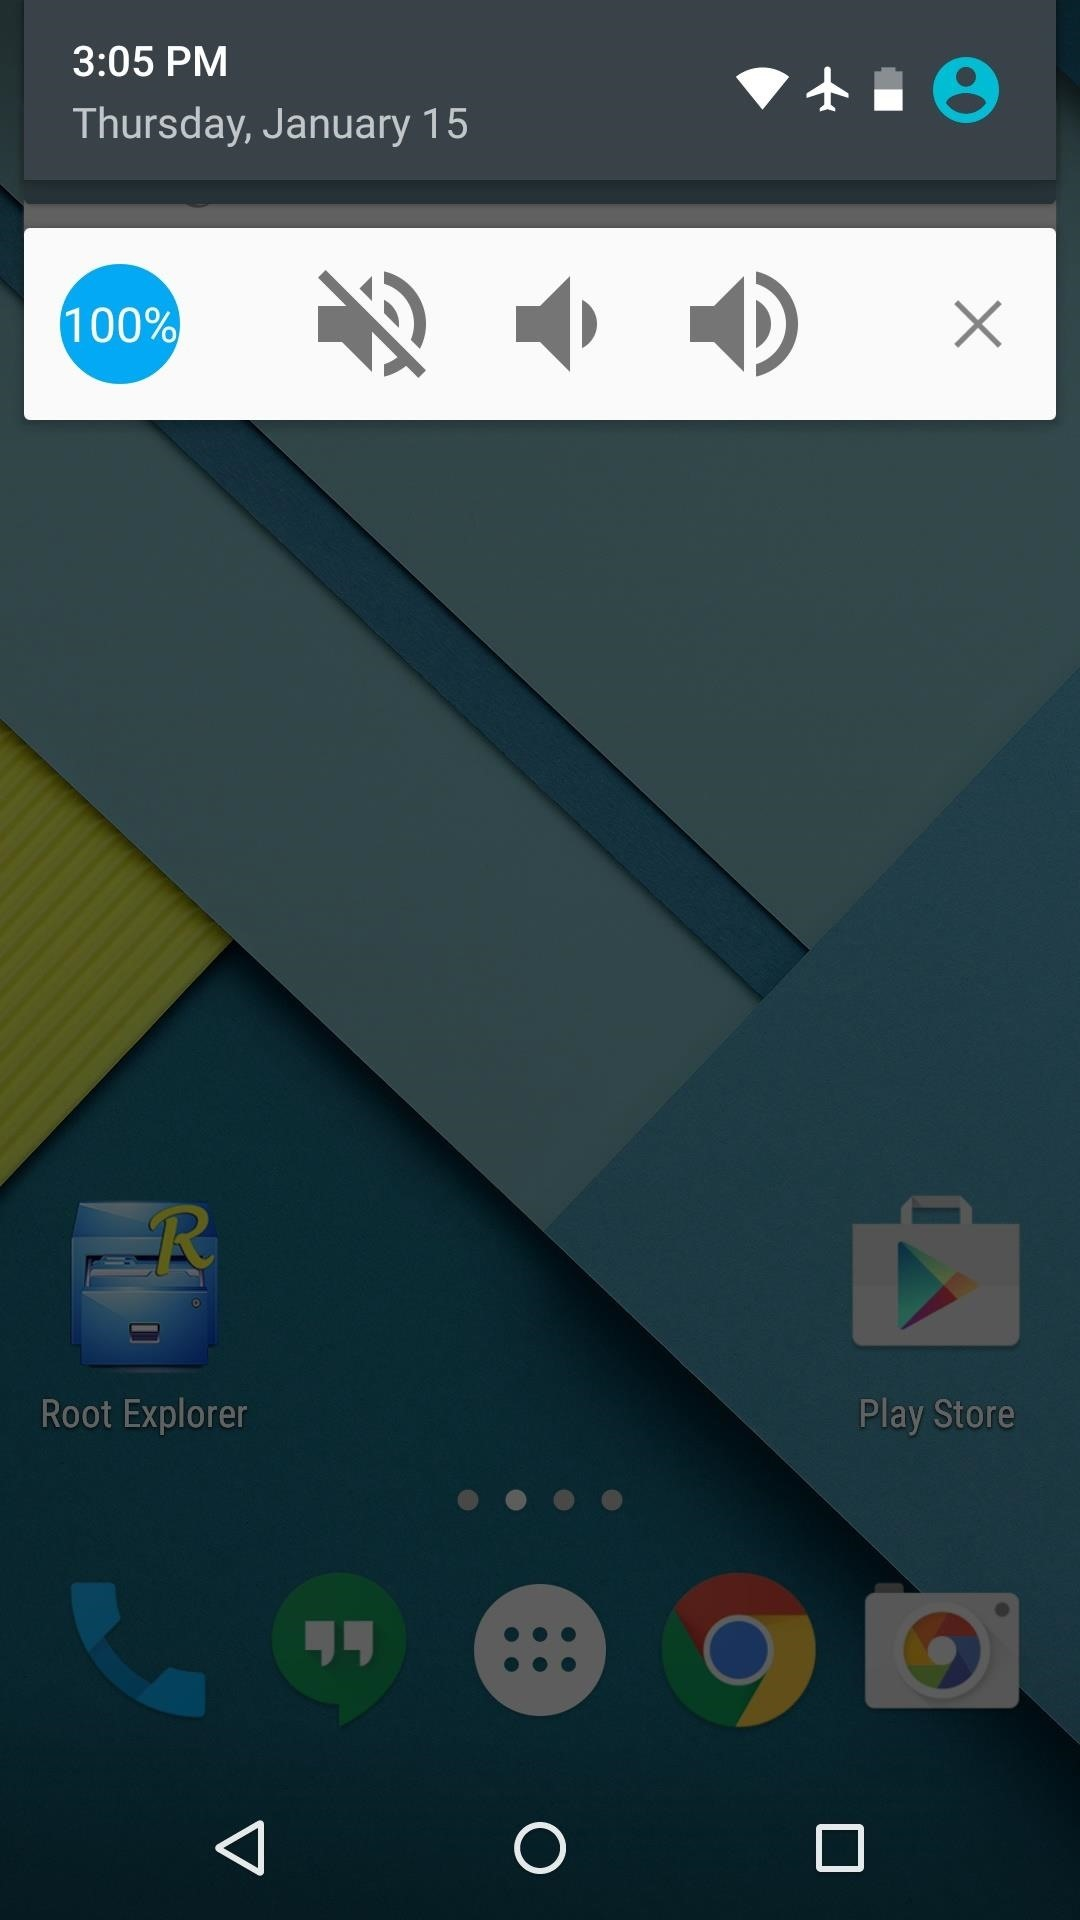 Control Volume Directly from the Notification Tray in Lollipop